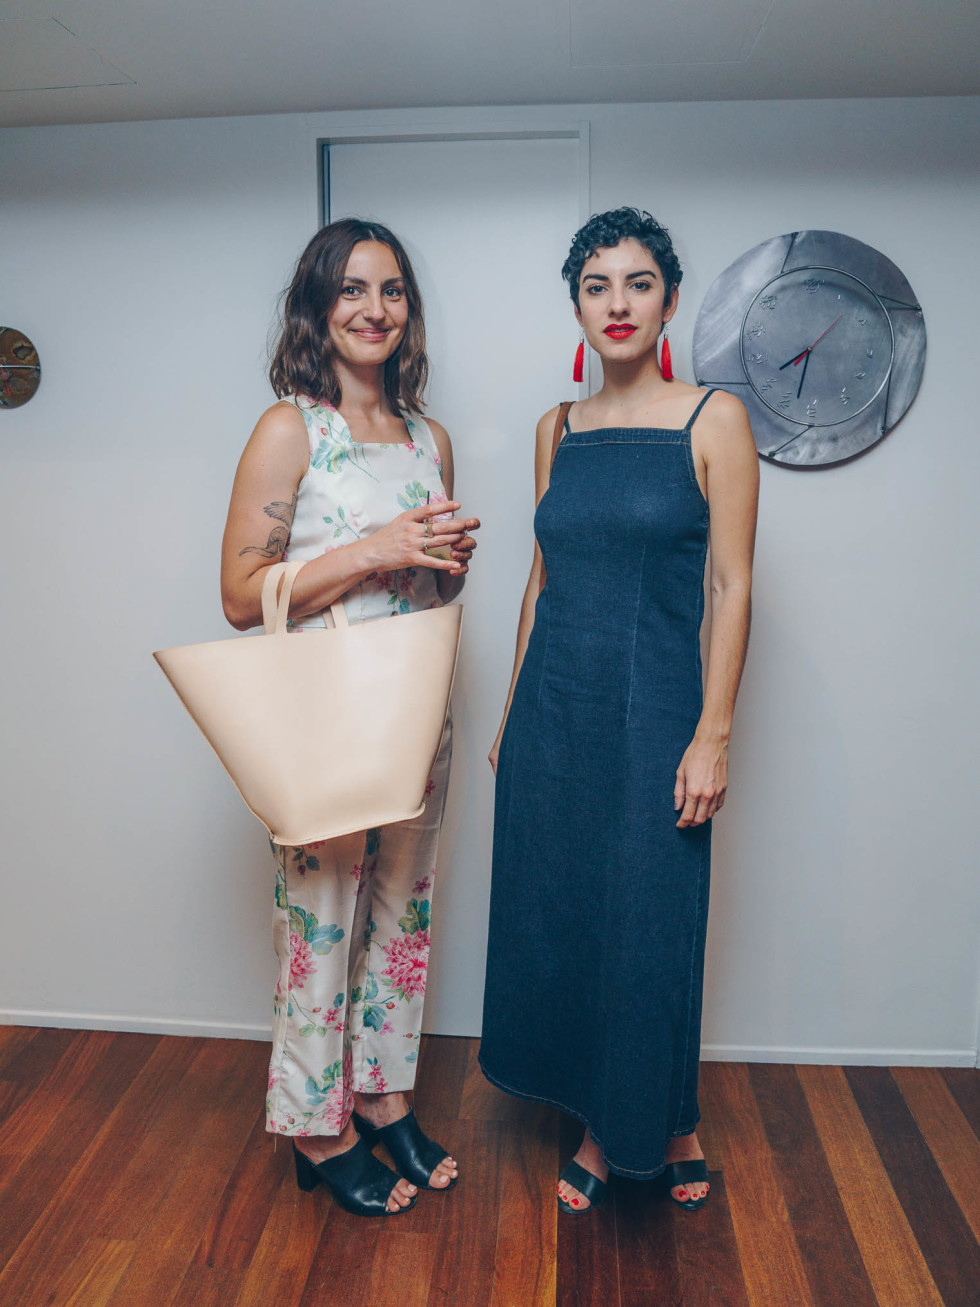 WEST After Hours at DEN Property Group Hannah Freedner Diamond Villela